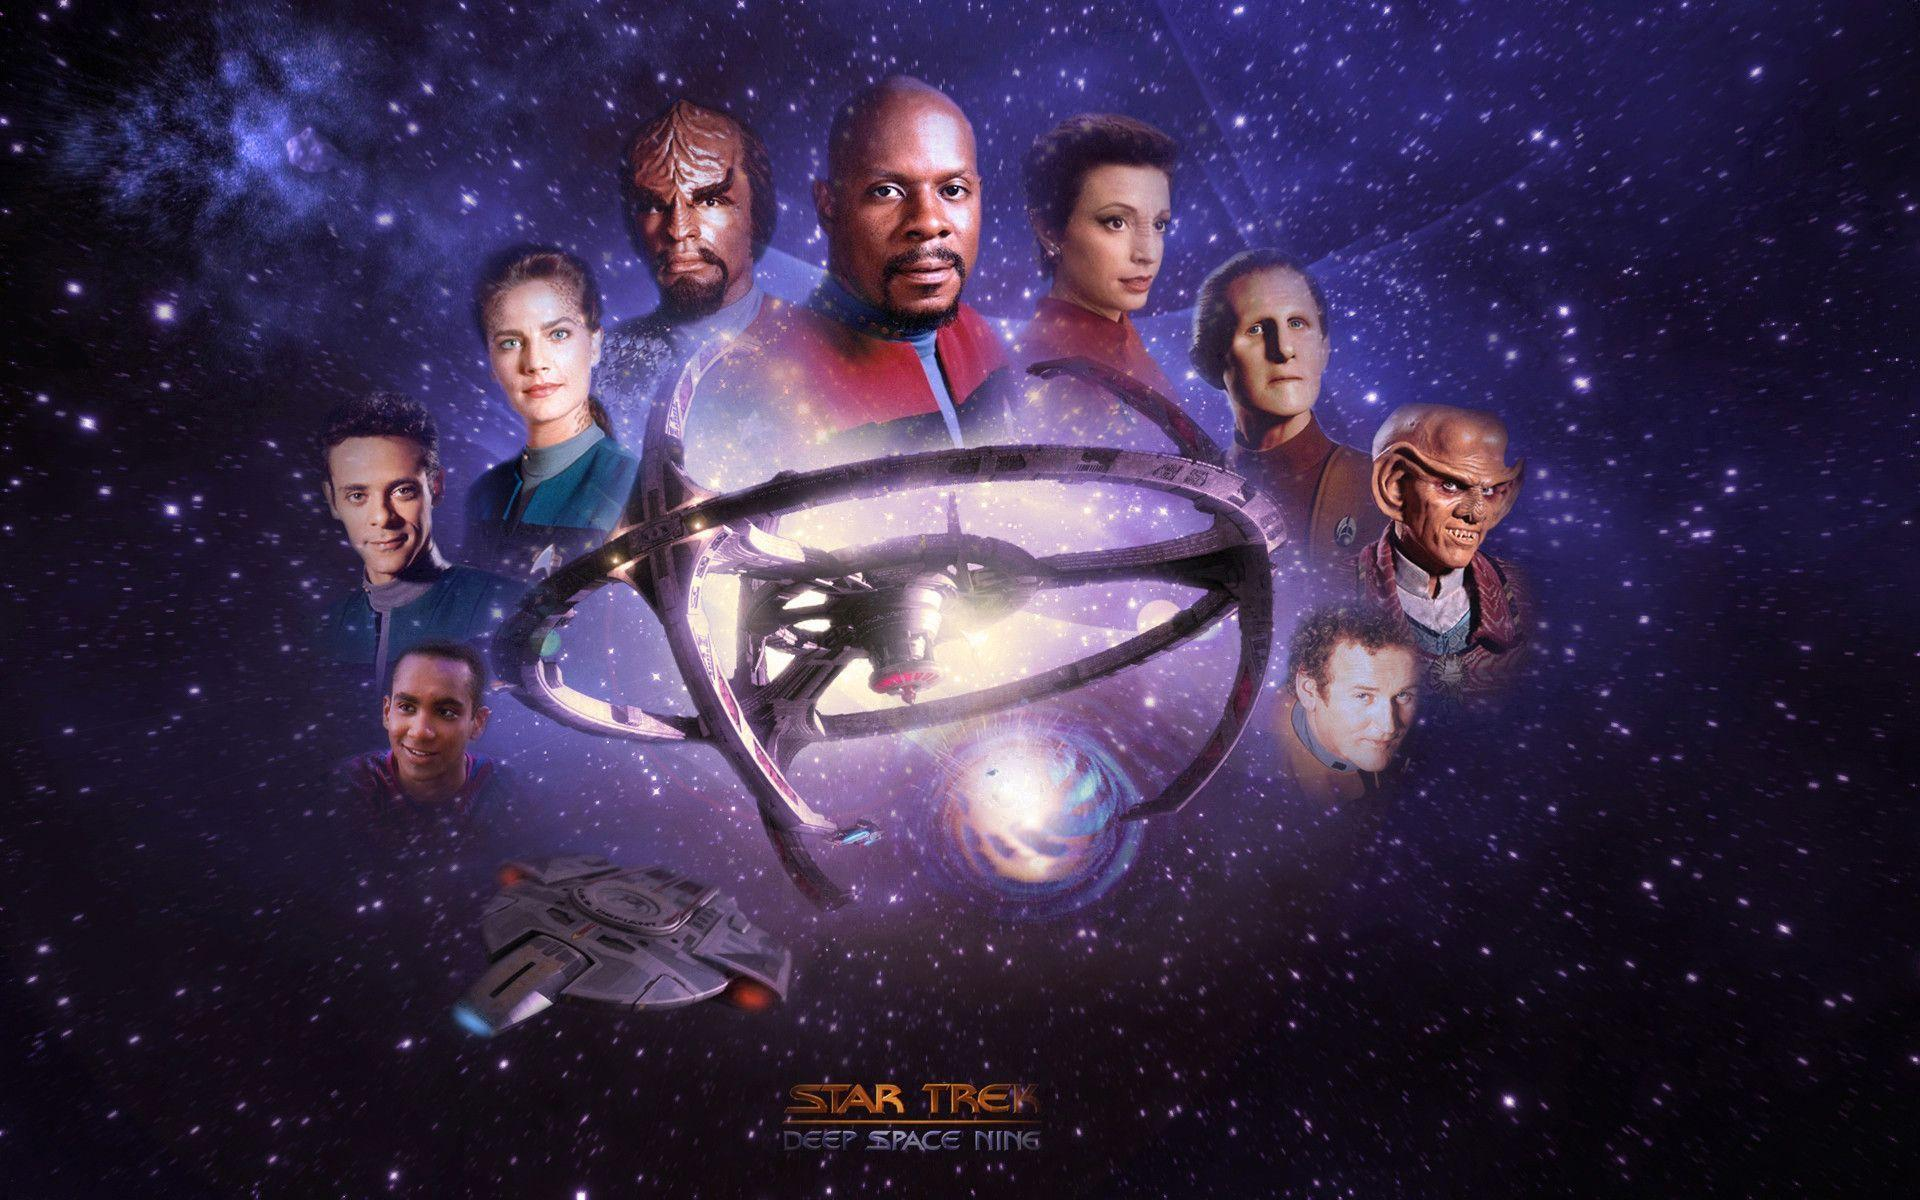 star trek deep space nine Computer Wallpapers, Desktop Backgrounds